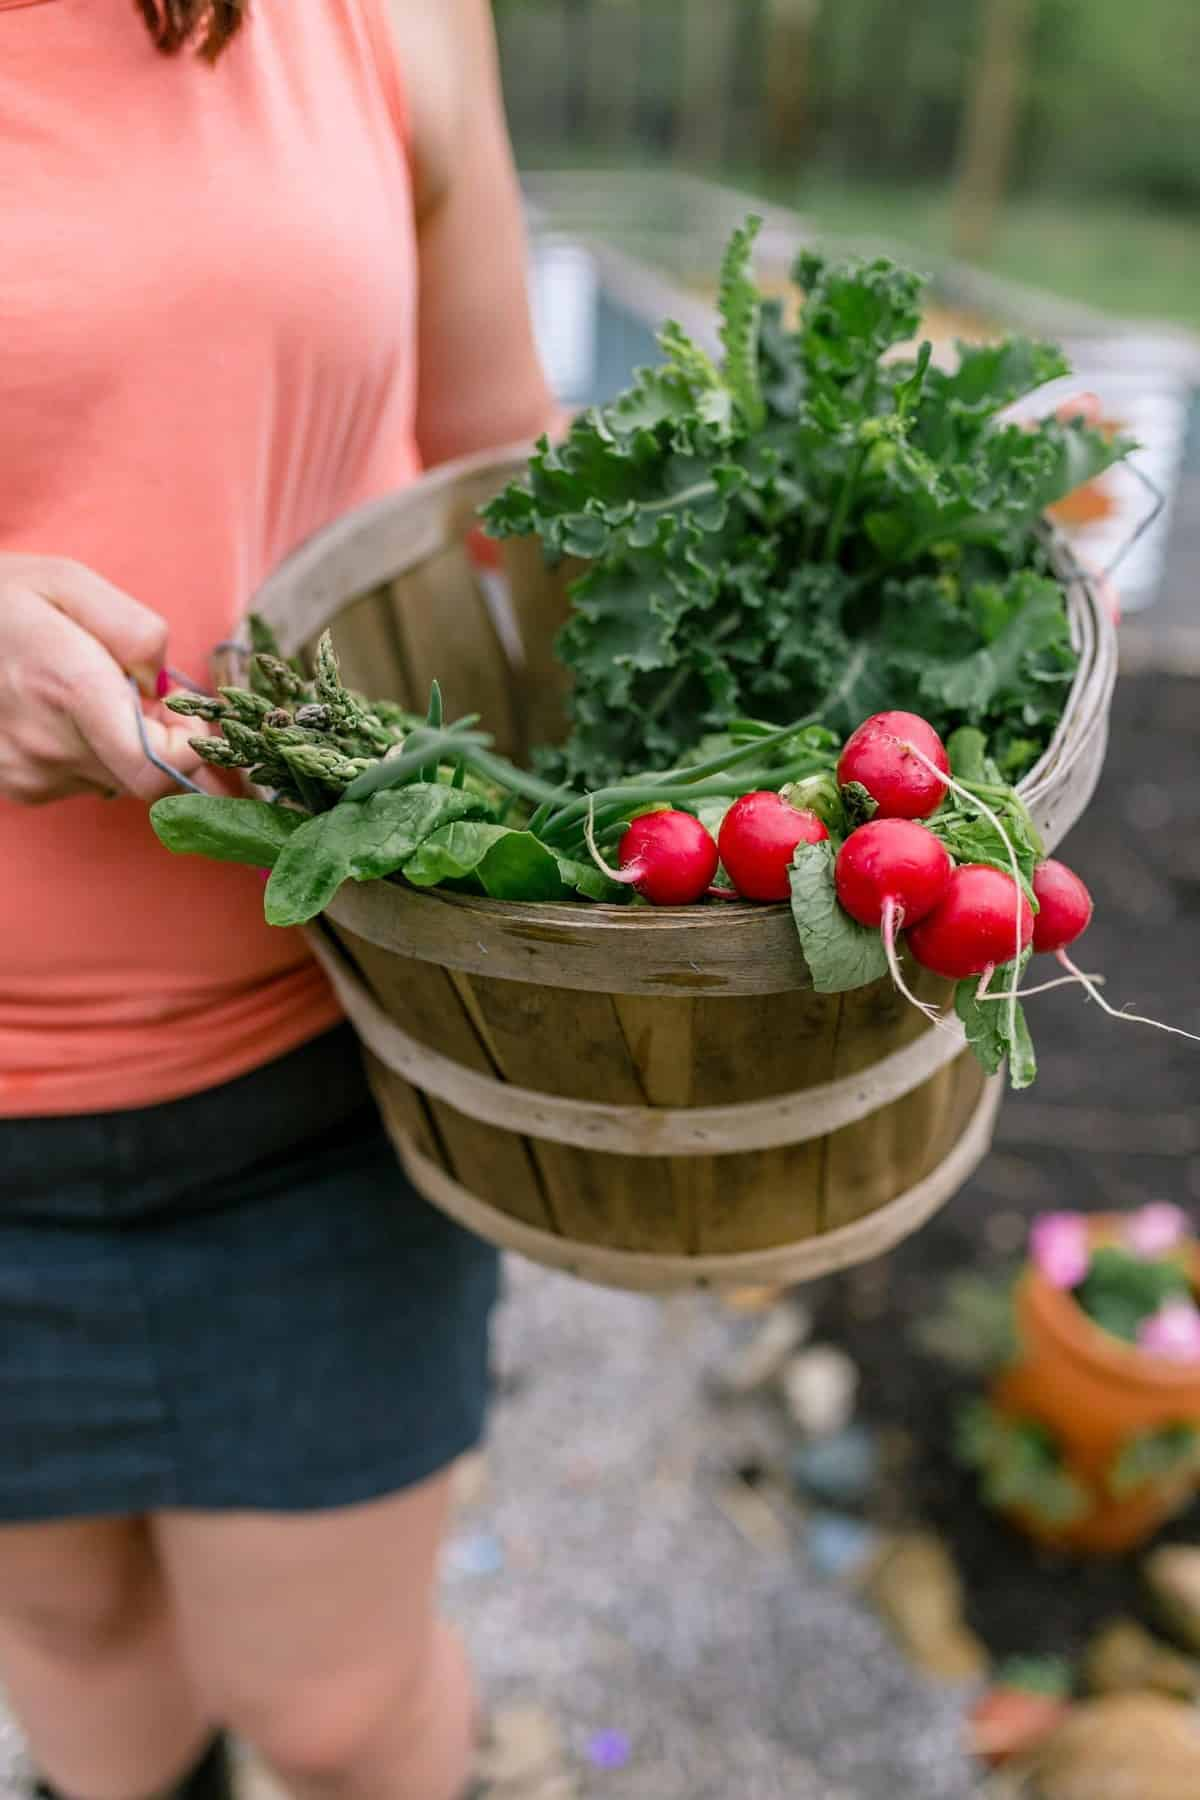 A woman holds a basket full of just-harvested garden vegetables.